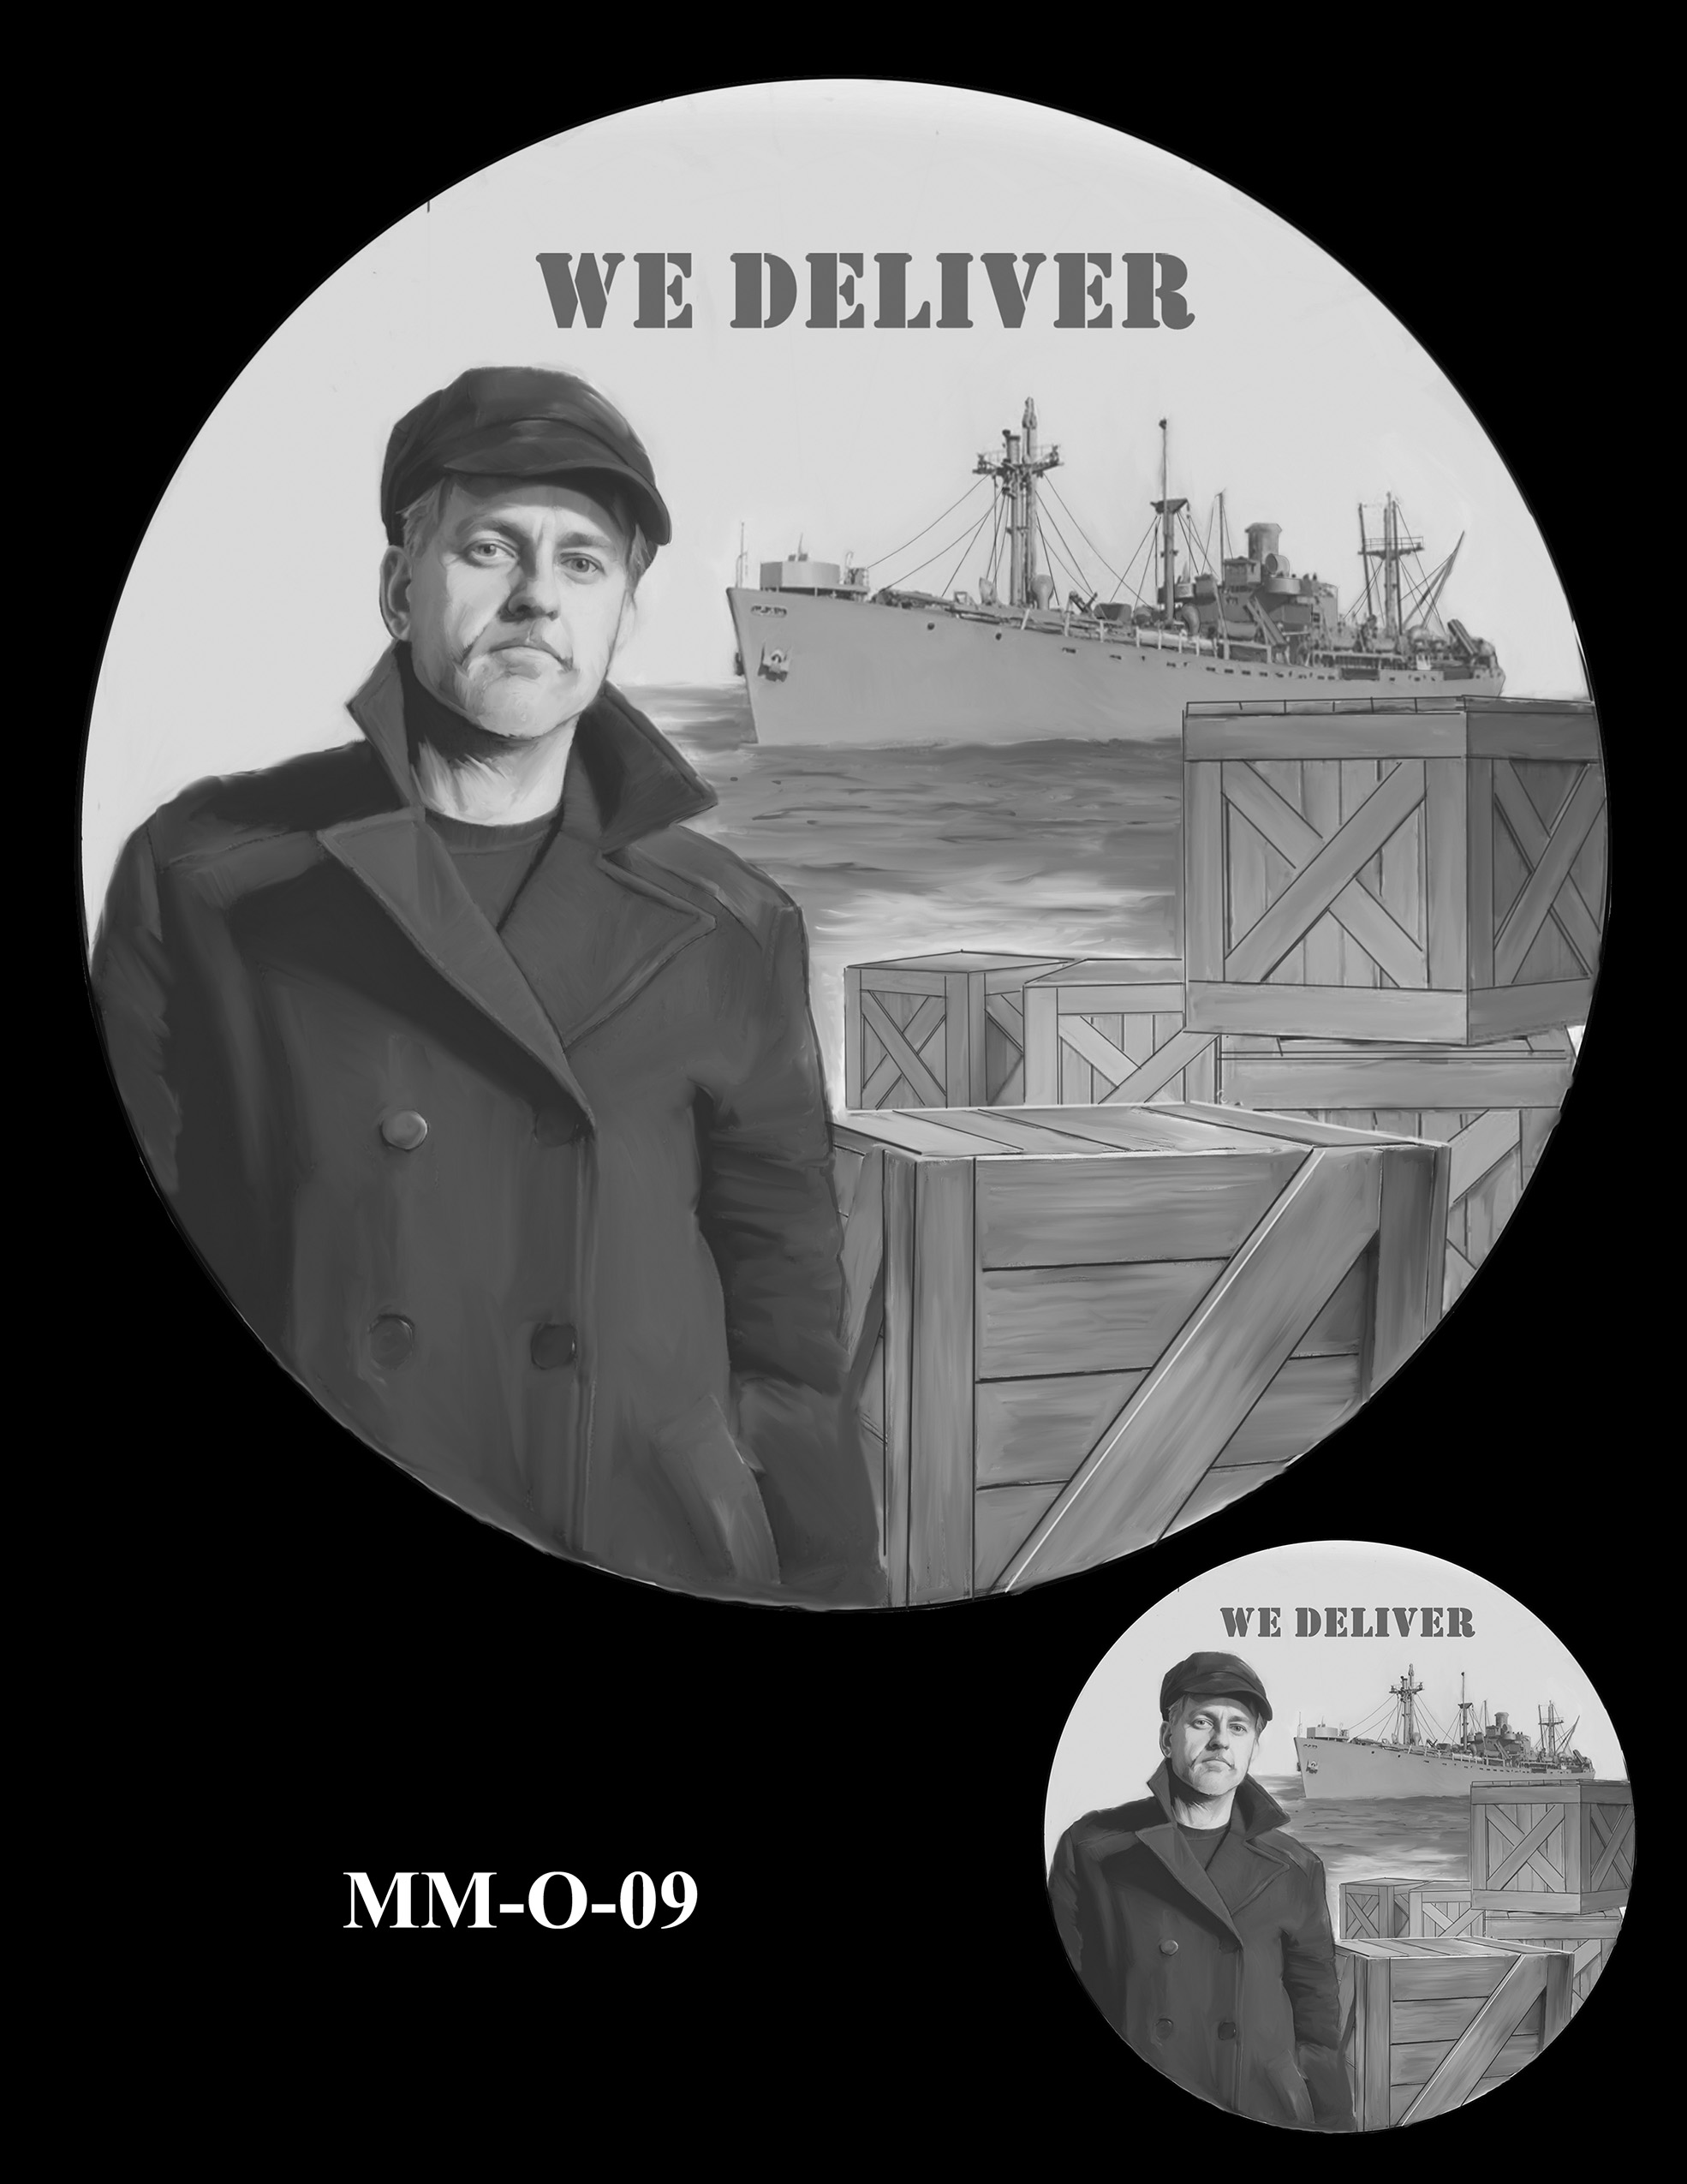 MM-O-09 -- Merchant Mariners of World War II Congressional Gold Medal